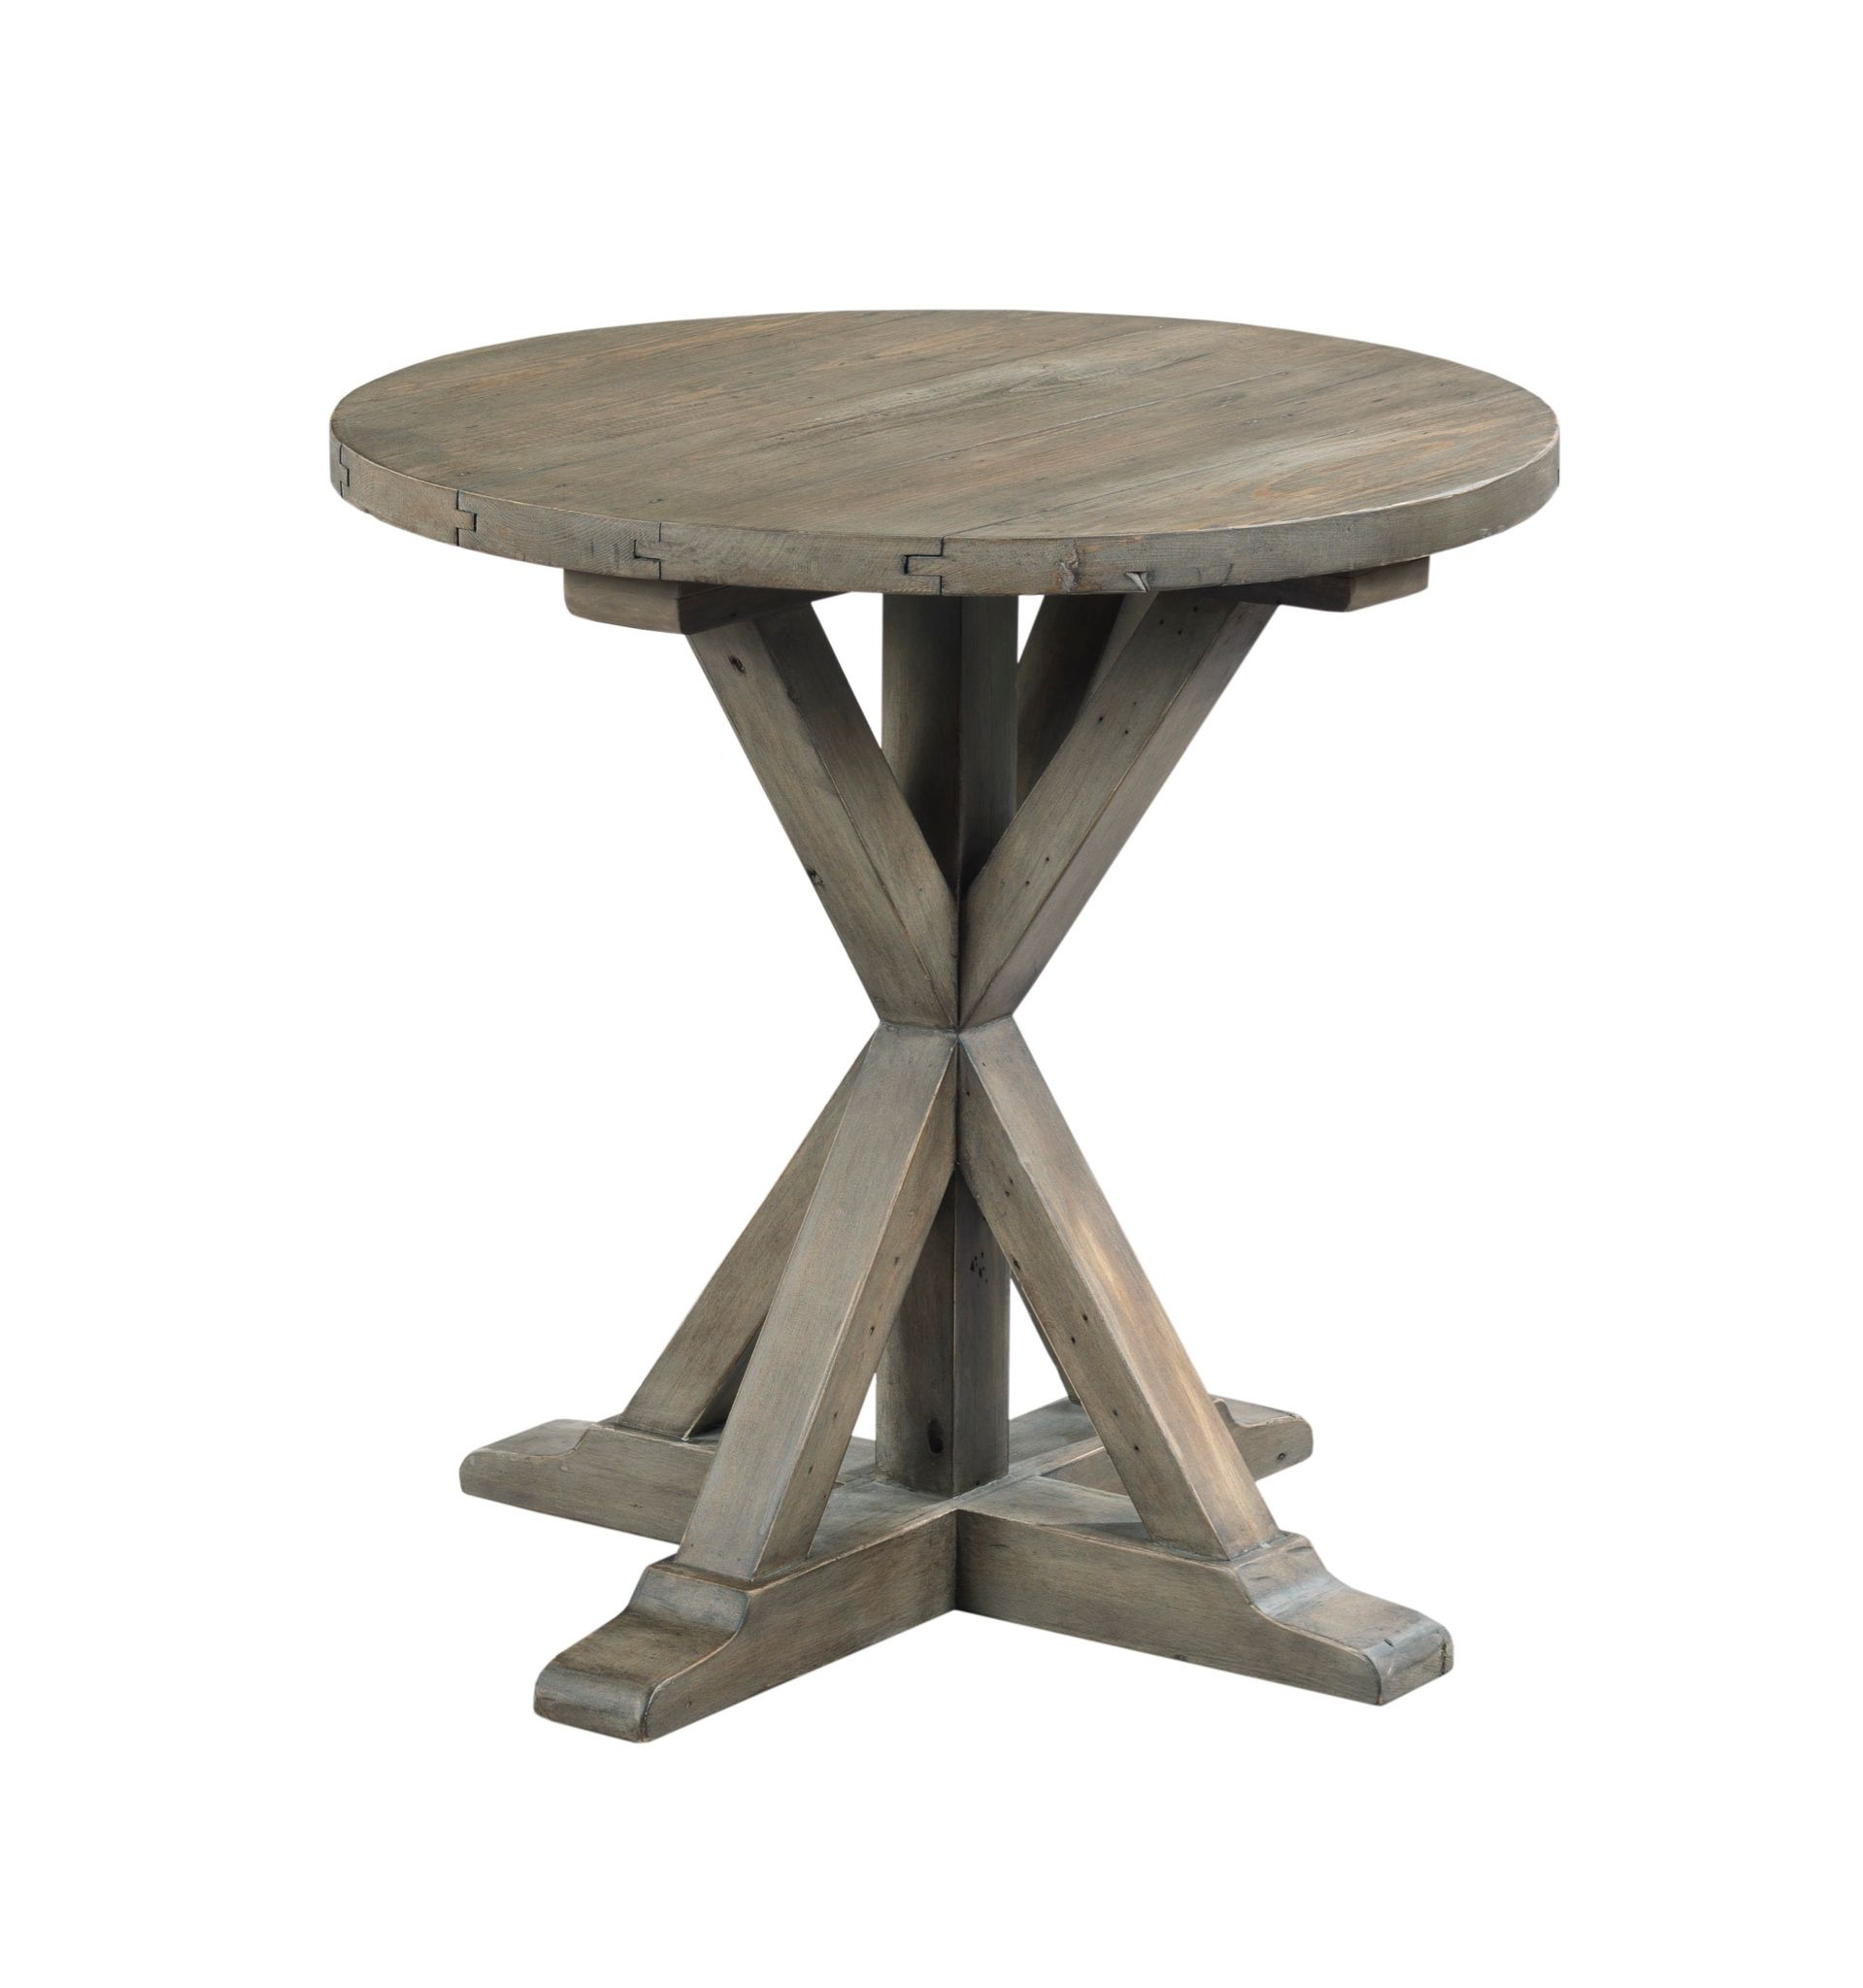 The Reclamation Place accent table by Hammary includes a mixture of wood species, creating a high-low or dark-light look that makes each piece unique. Details such as oxidized stains from old nails and saw marks that reveal previous use tell an intriguing story, and custom hardware and hammered metal accents complete a look that is equally at home in an urban loft or a country home. New for #hpmkt Spring 2015.